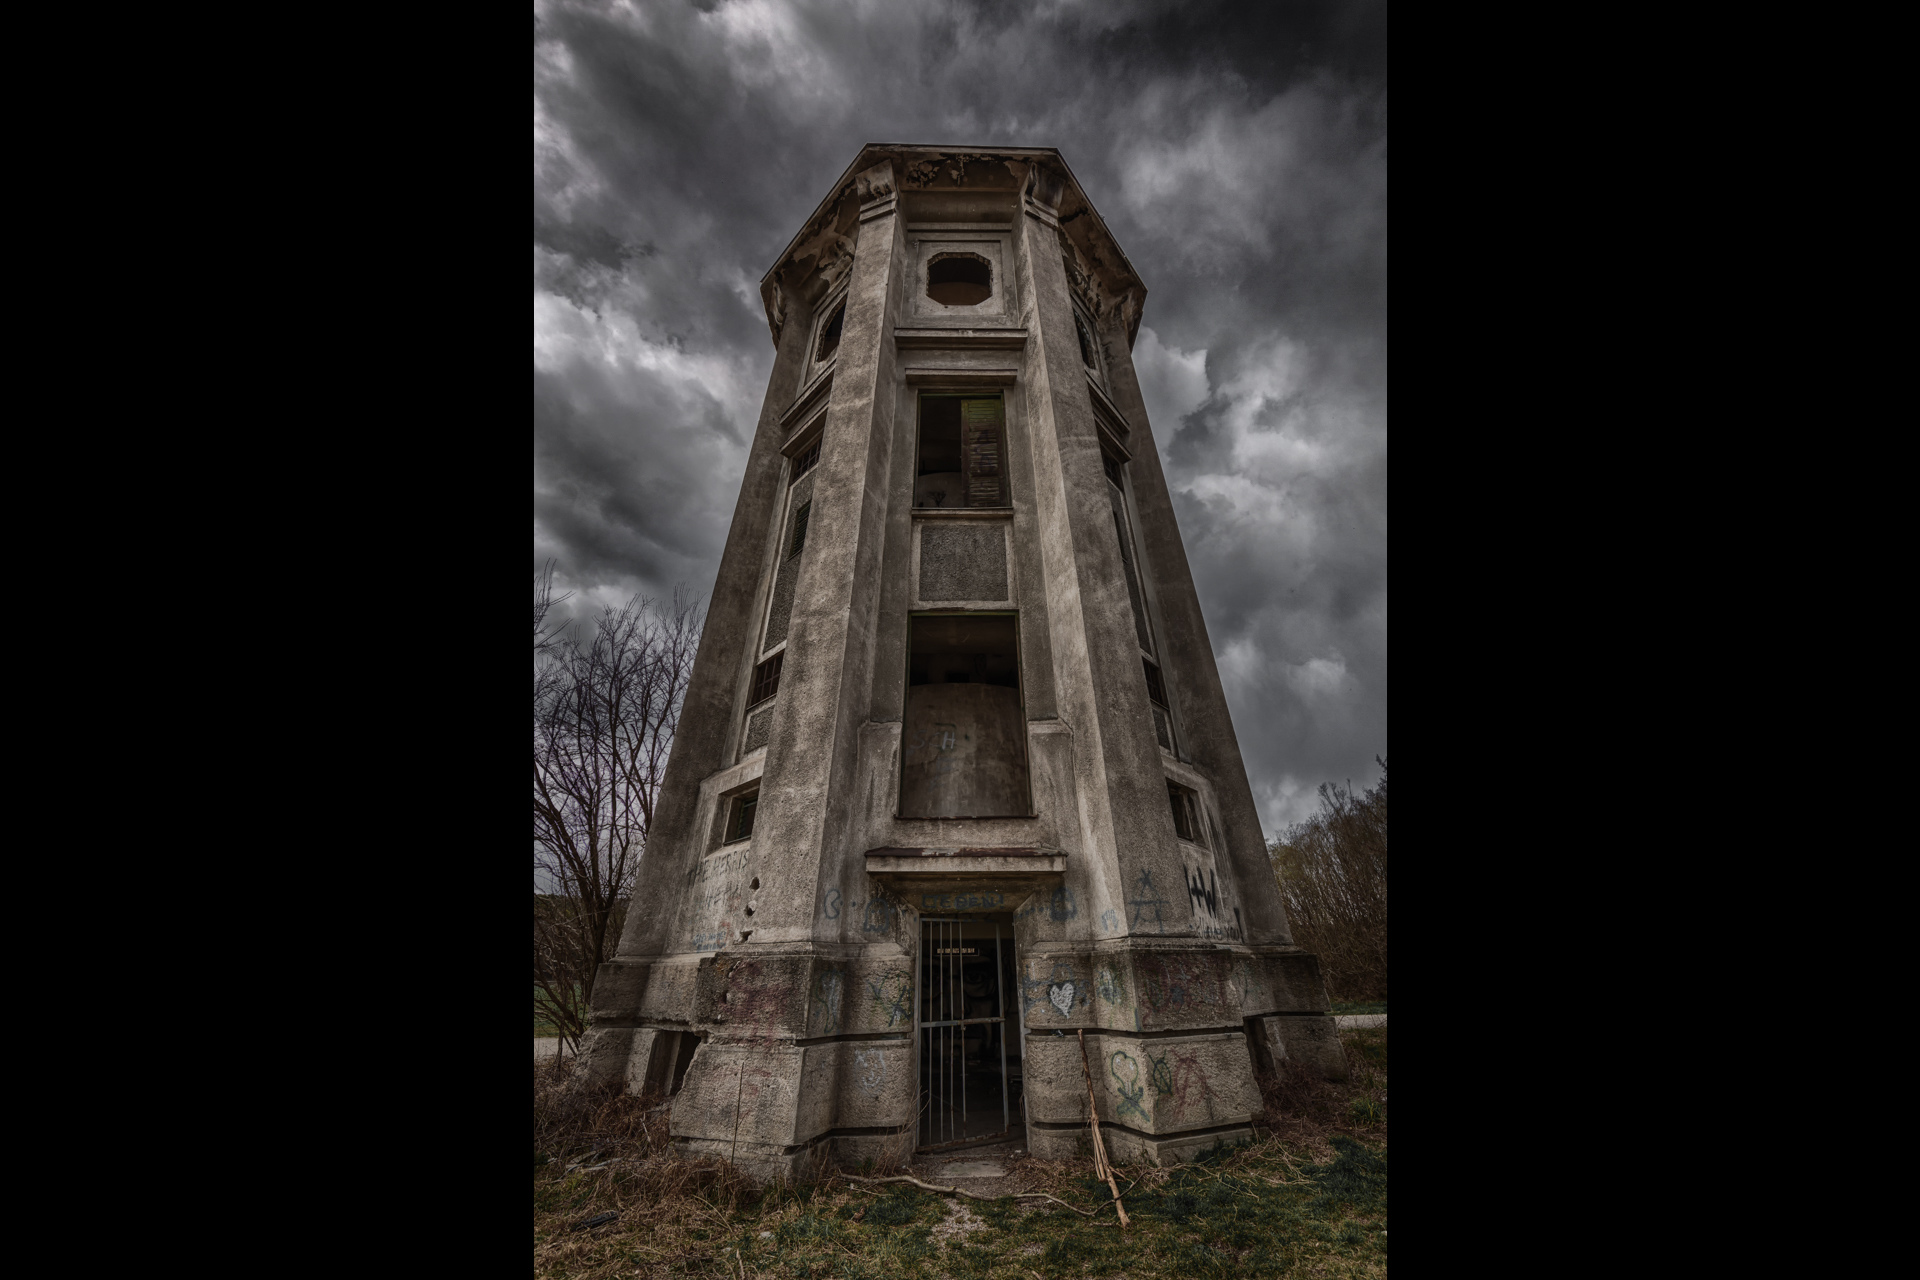 Urban Exploration - Tyre Tower - The Tyre Tower